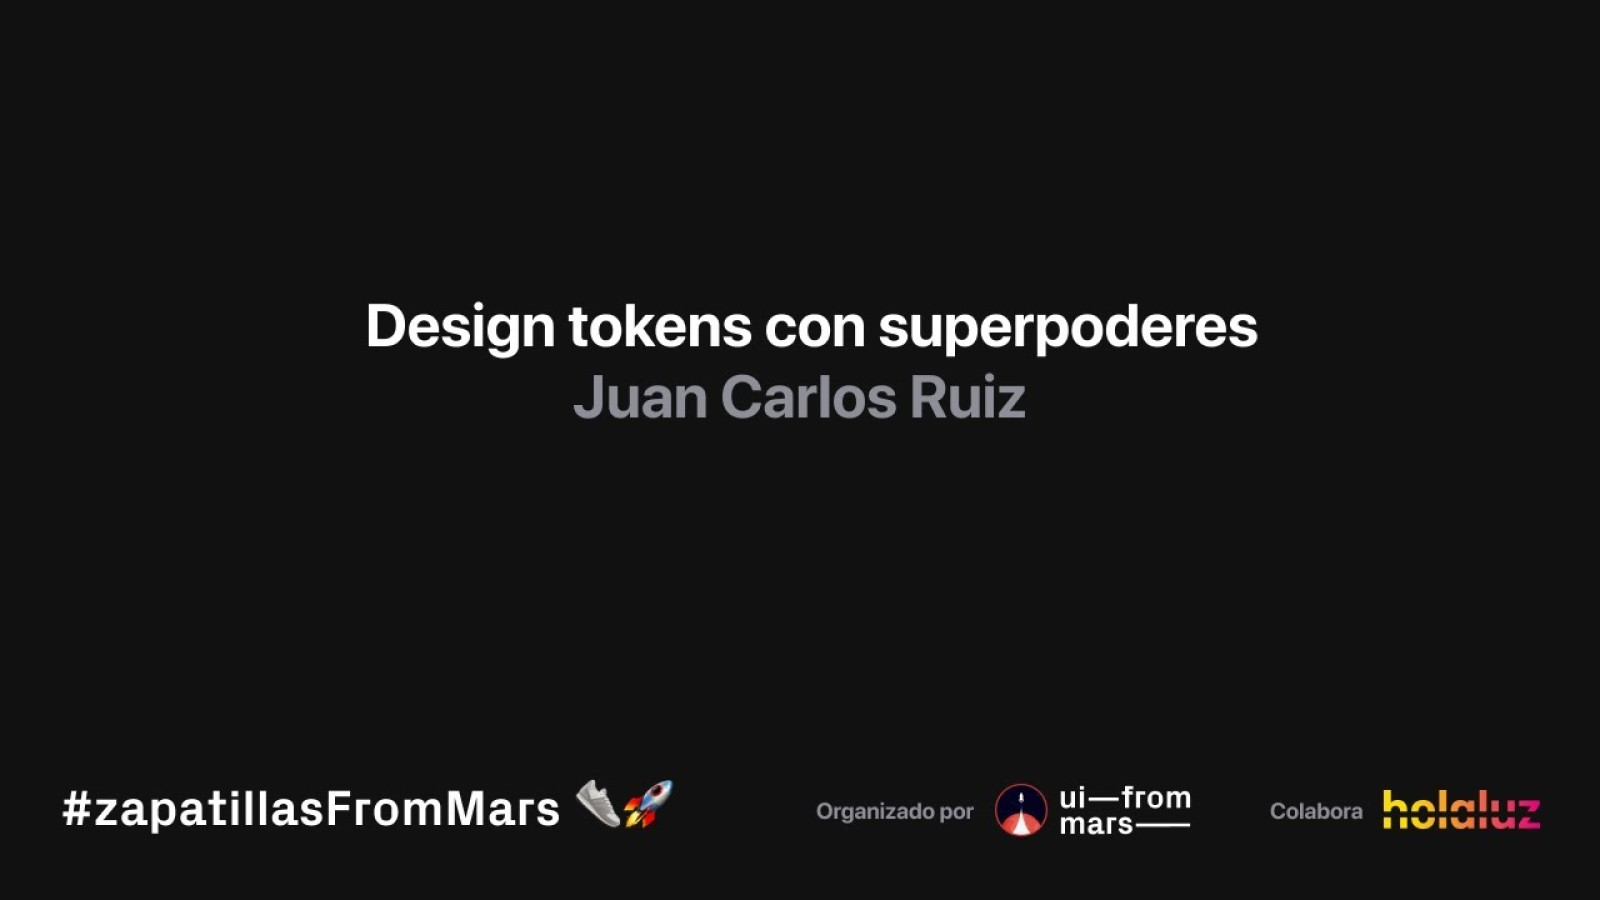 Design tokens with superpowers!